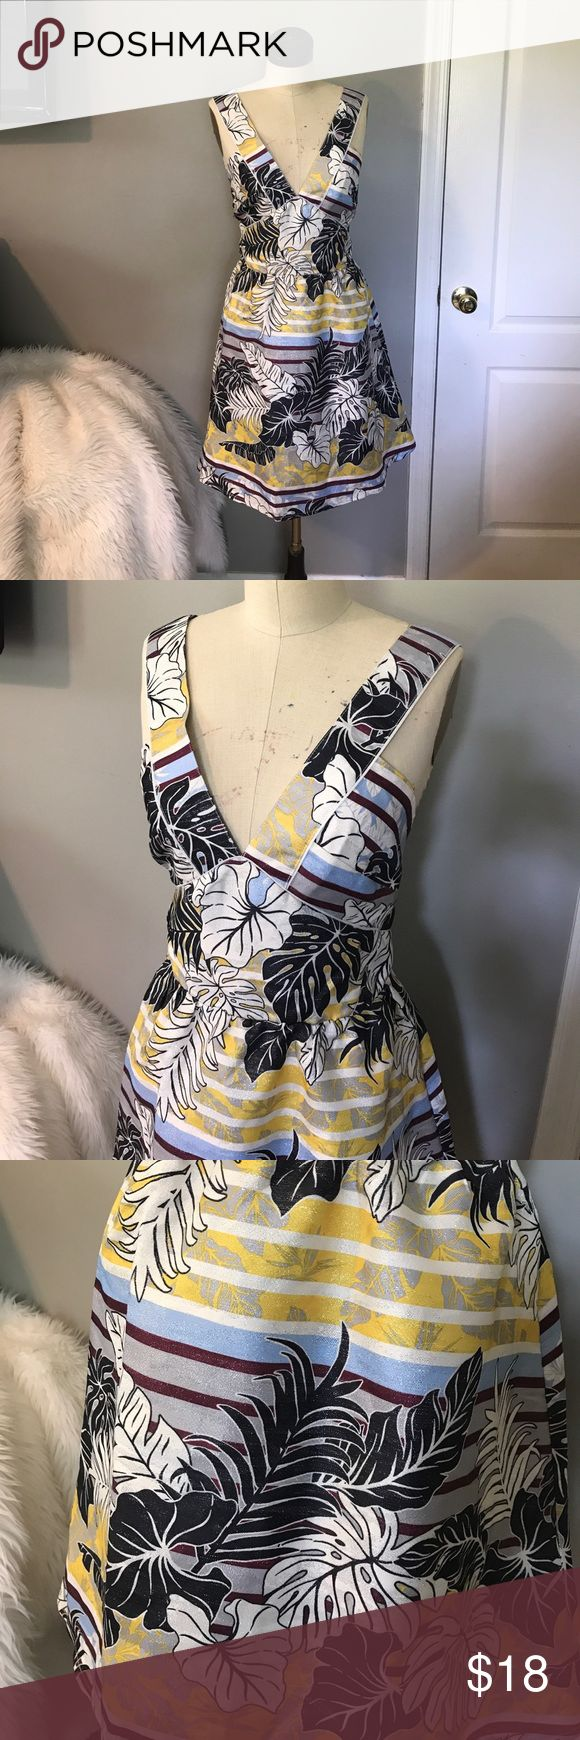 BNWT! Tropical metallic dress w/ adorable cutouts Dress by H and M. This dress is gorgeous and perfect for spring and summer, vacay, parties, date night, etc! Size 14. Brand new with tags still on! Adorable details and design! H&M Dresses Midi